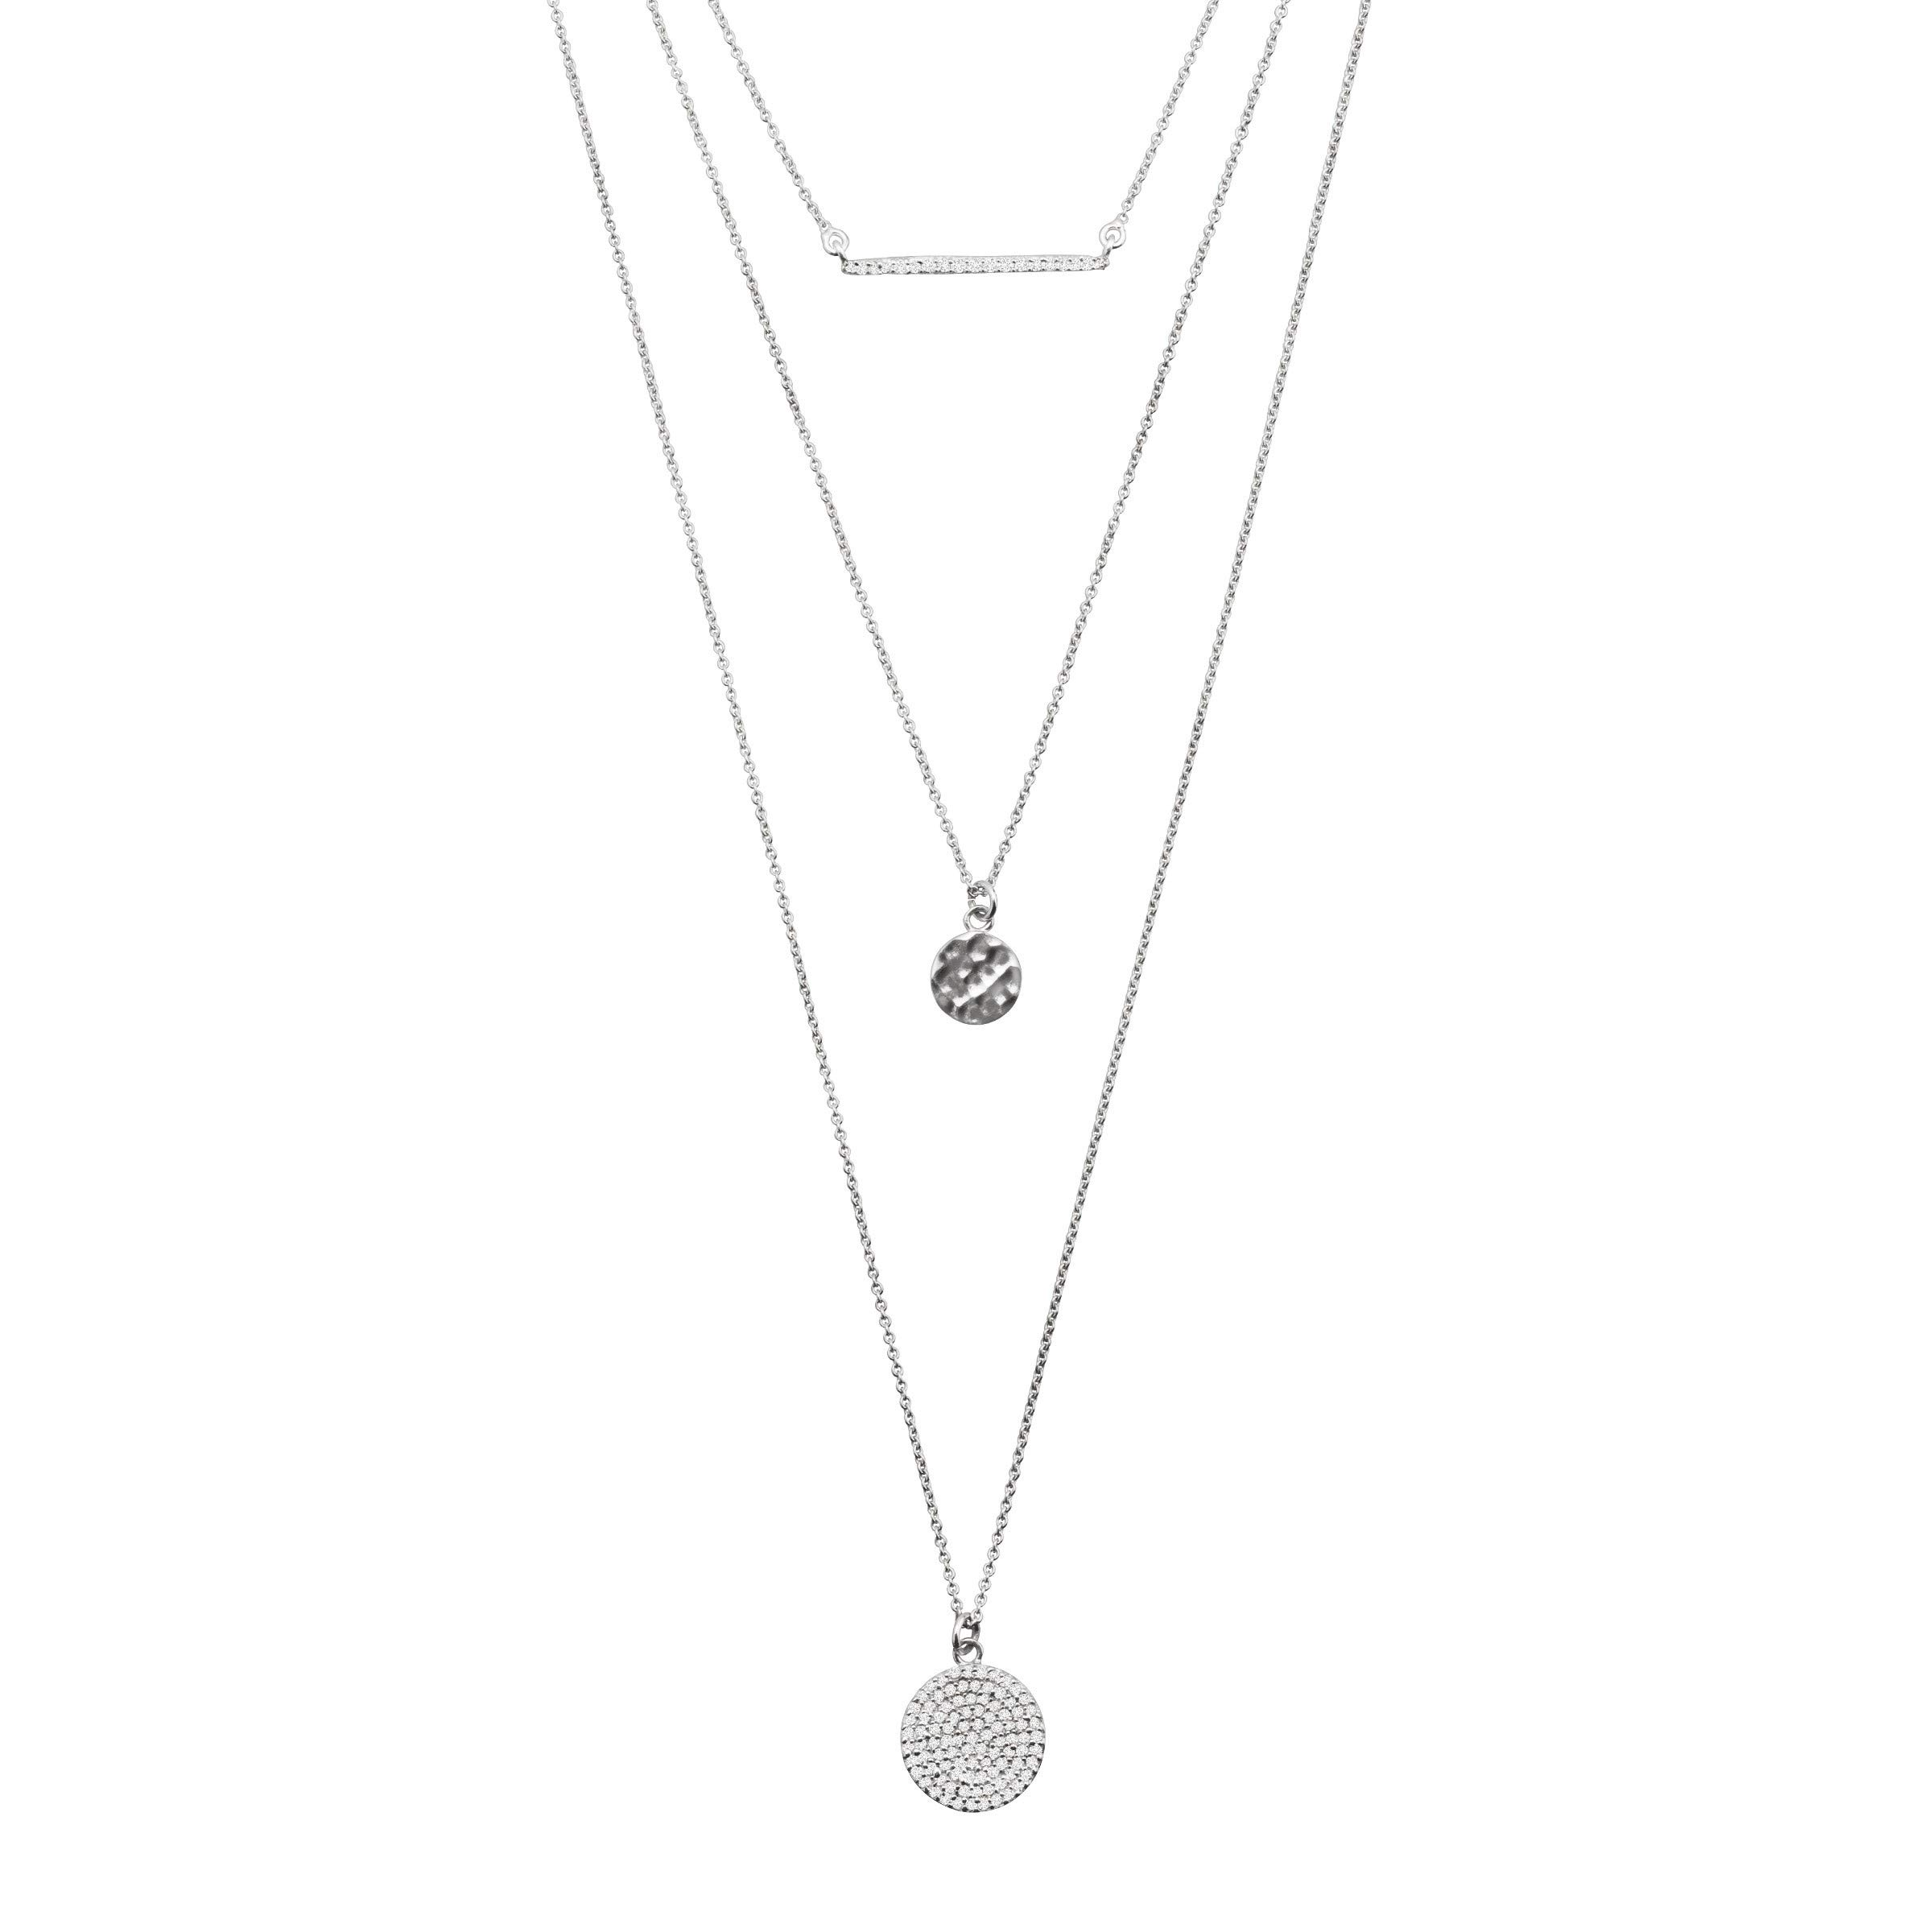 Silpada 'Triple Drop' 1/2 ct Cubic Zirconia Necklace in Sterling Silver